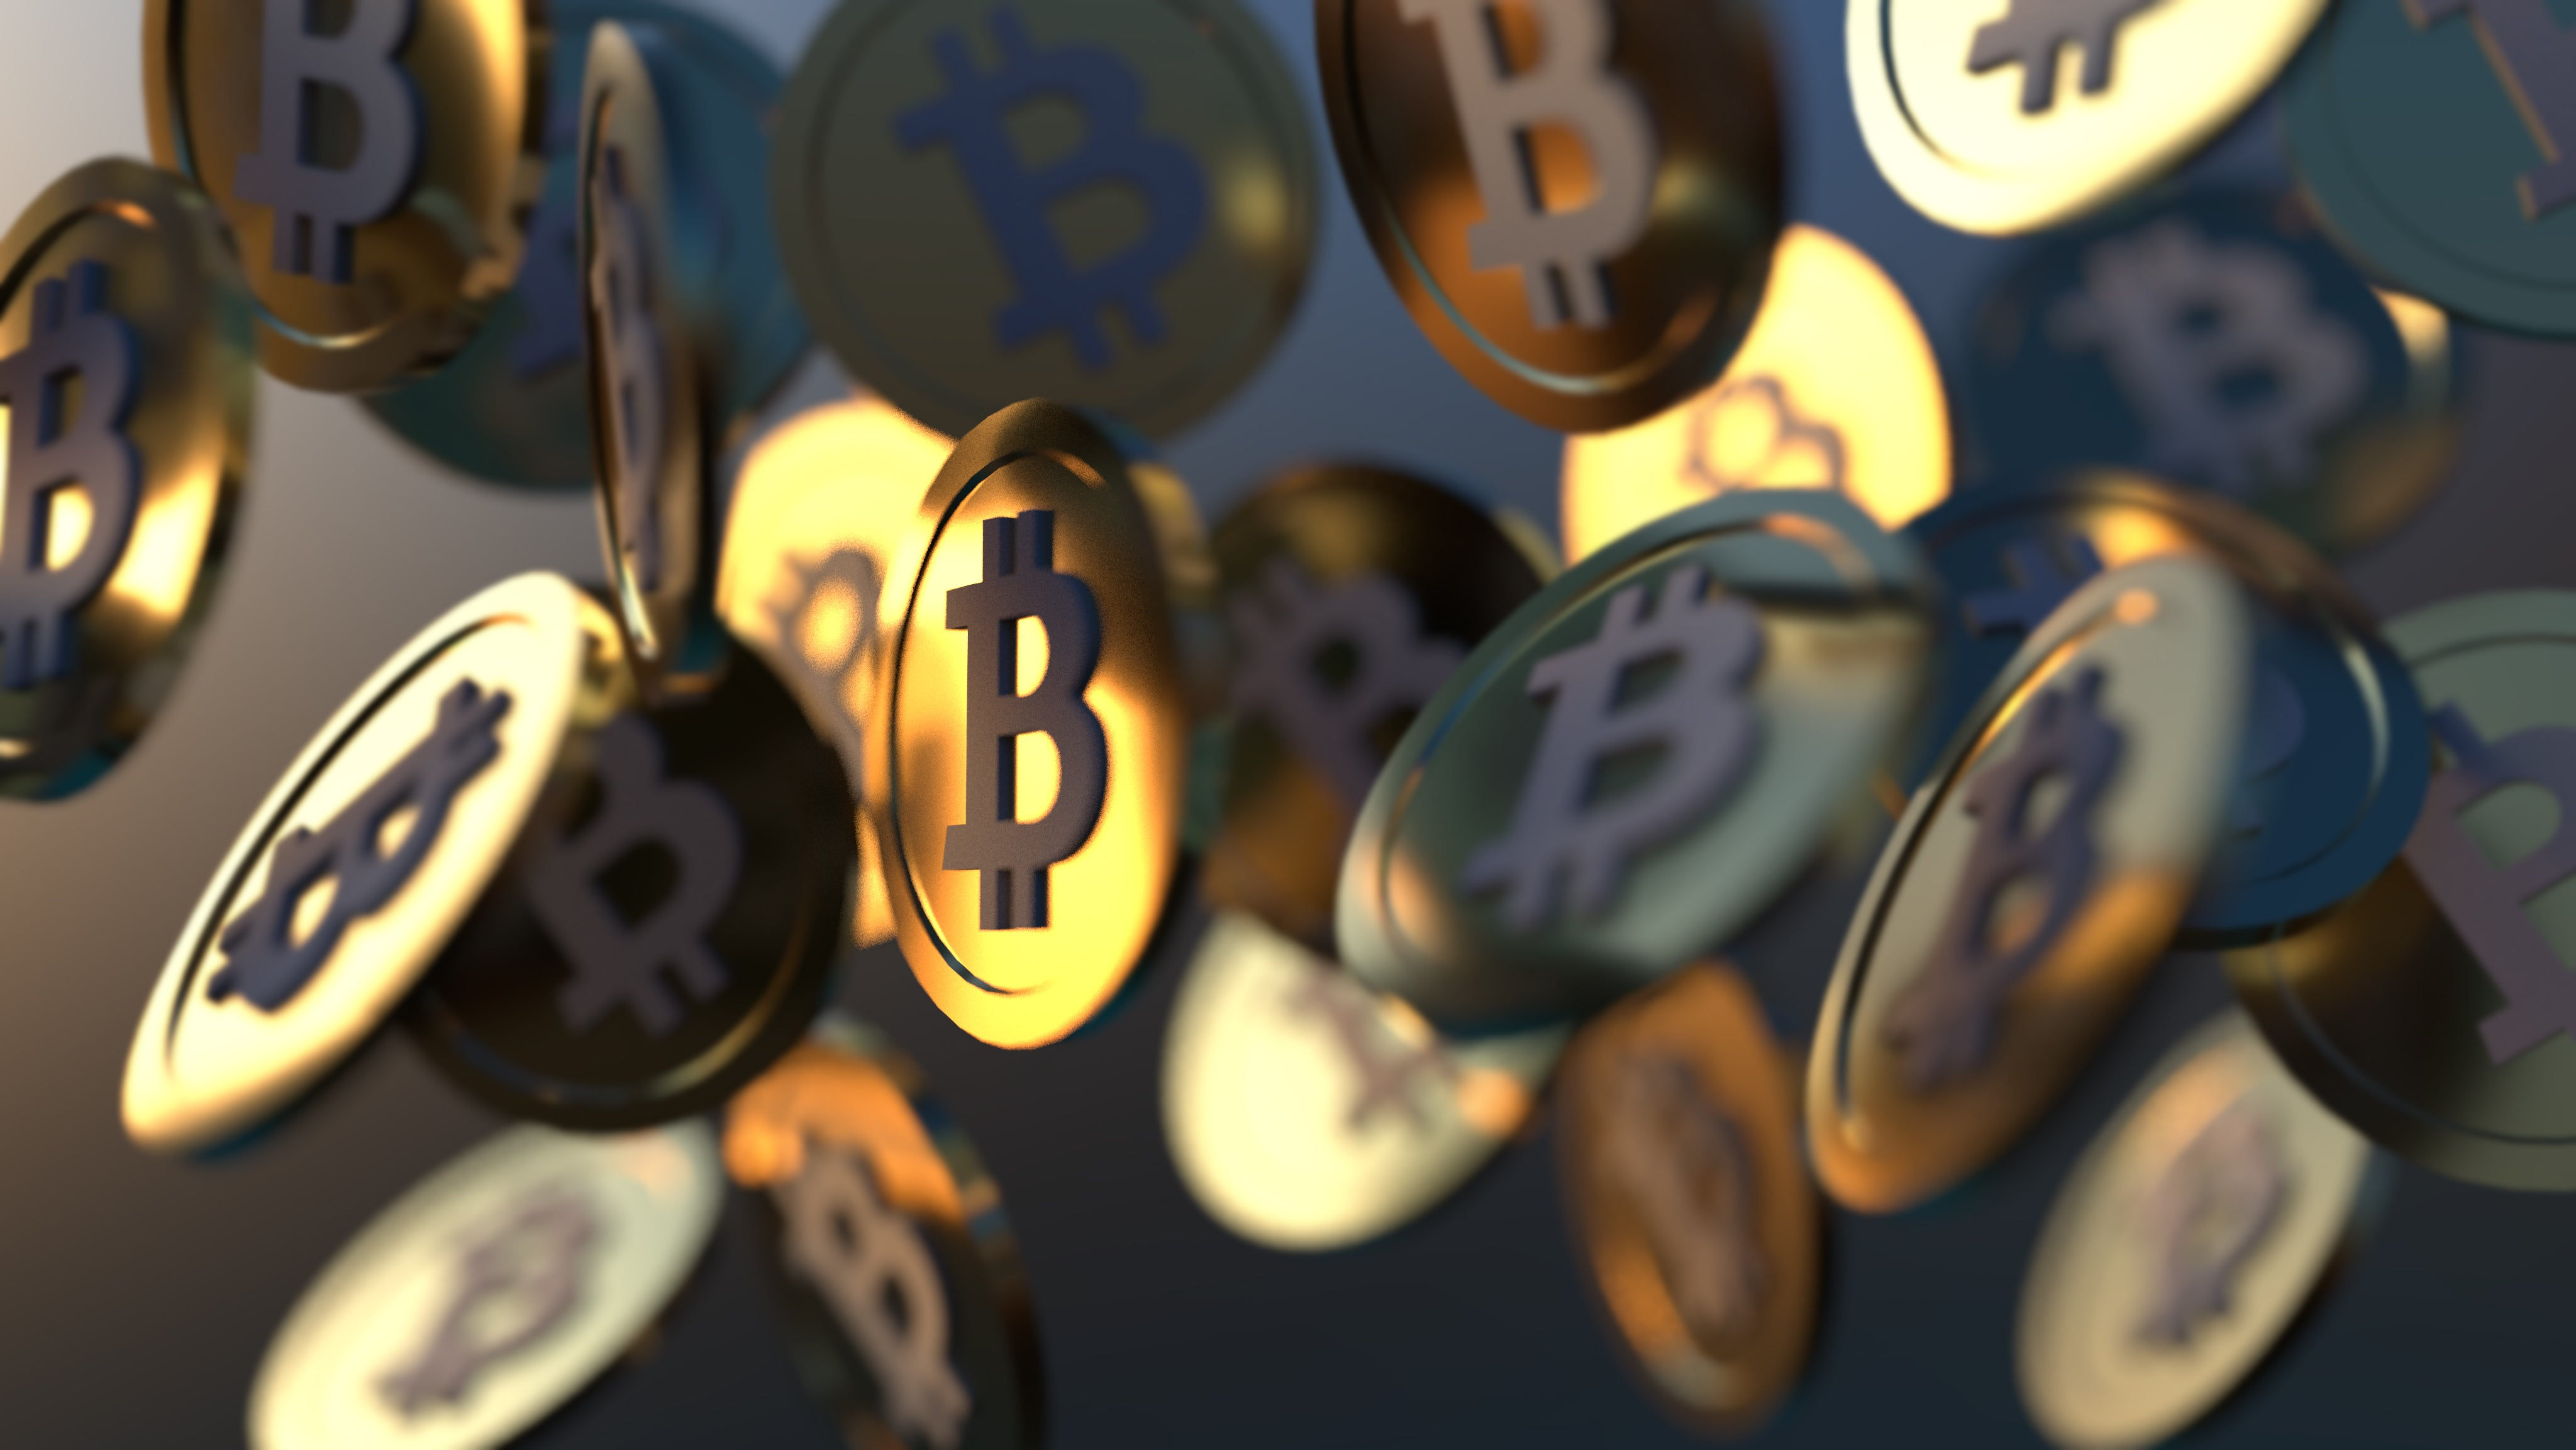 Should You Invest in Bitcoin With Your Stimulus Check? | The Motley Fool